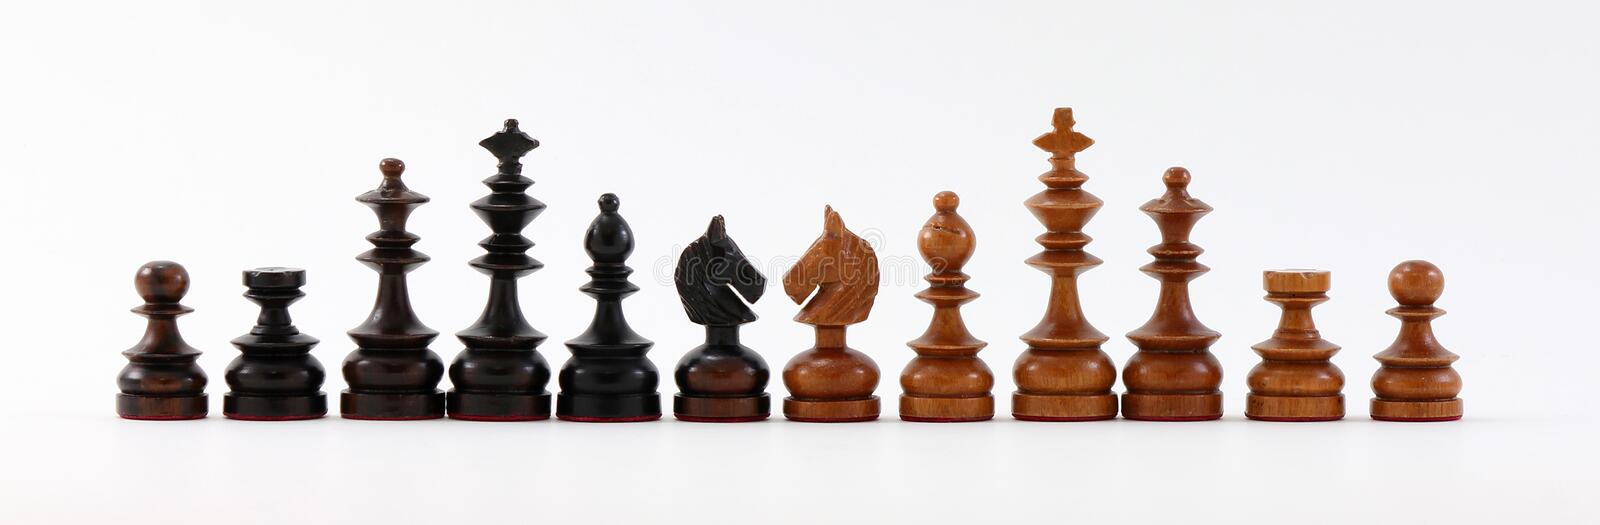 Download Chess Pieces Black And Brown Stock Photo - Image: 18633868